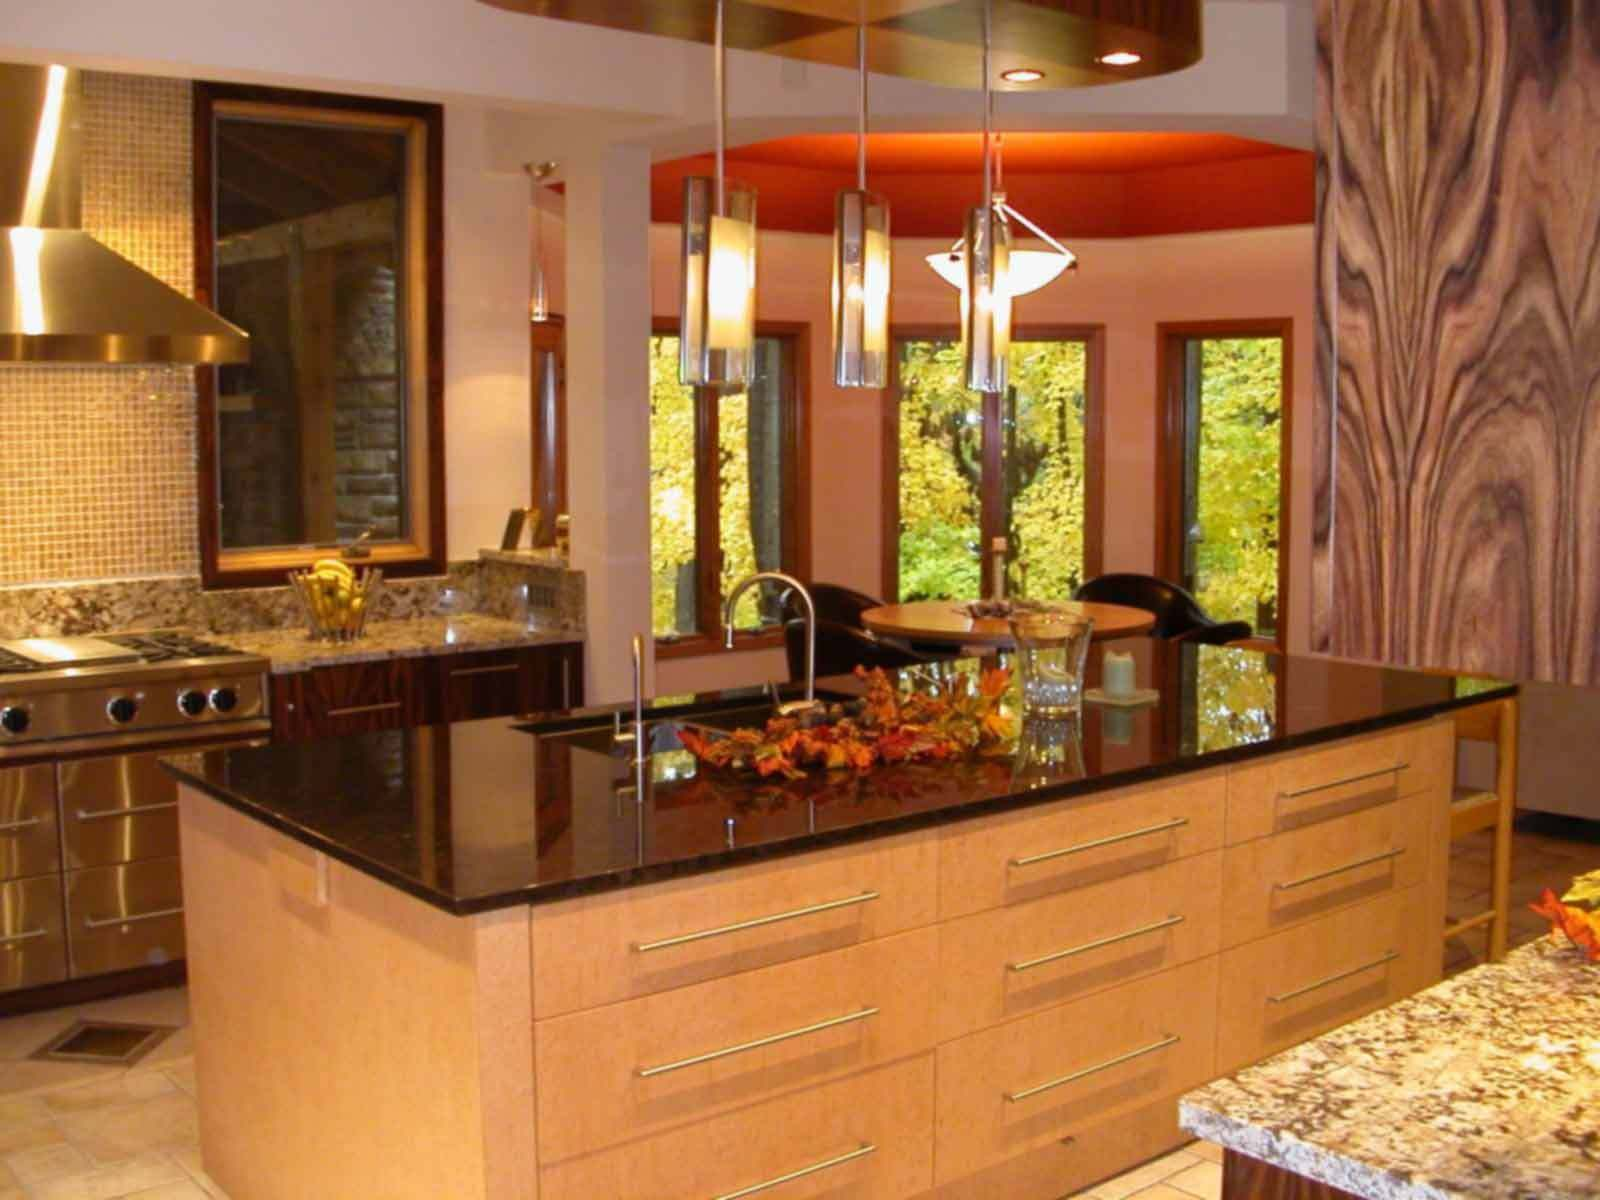 St. Louis Kitchen Remodels